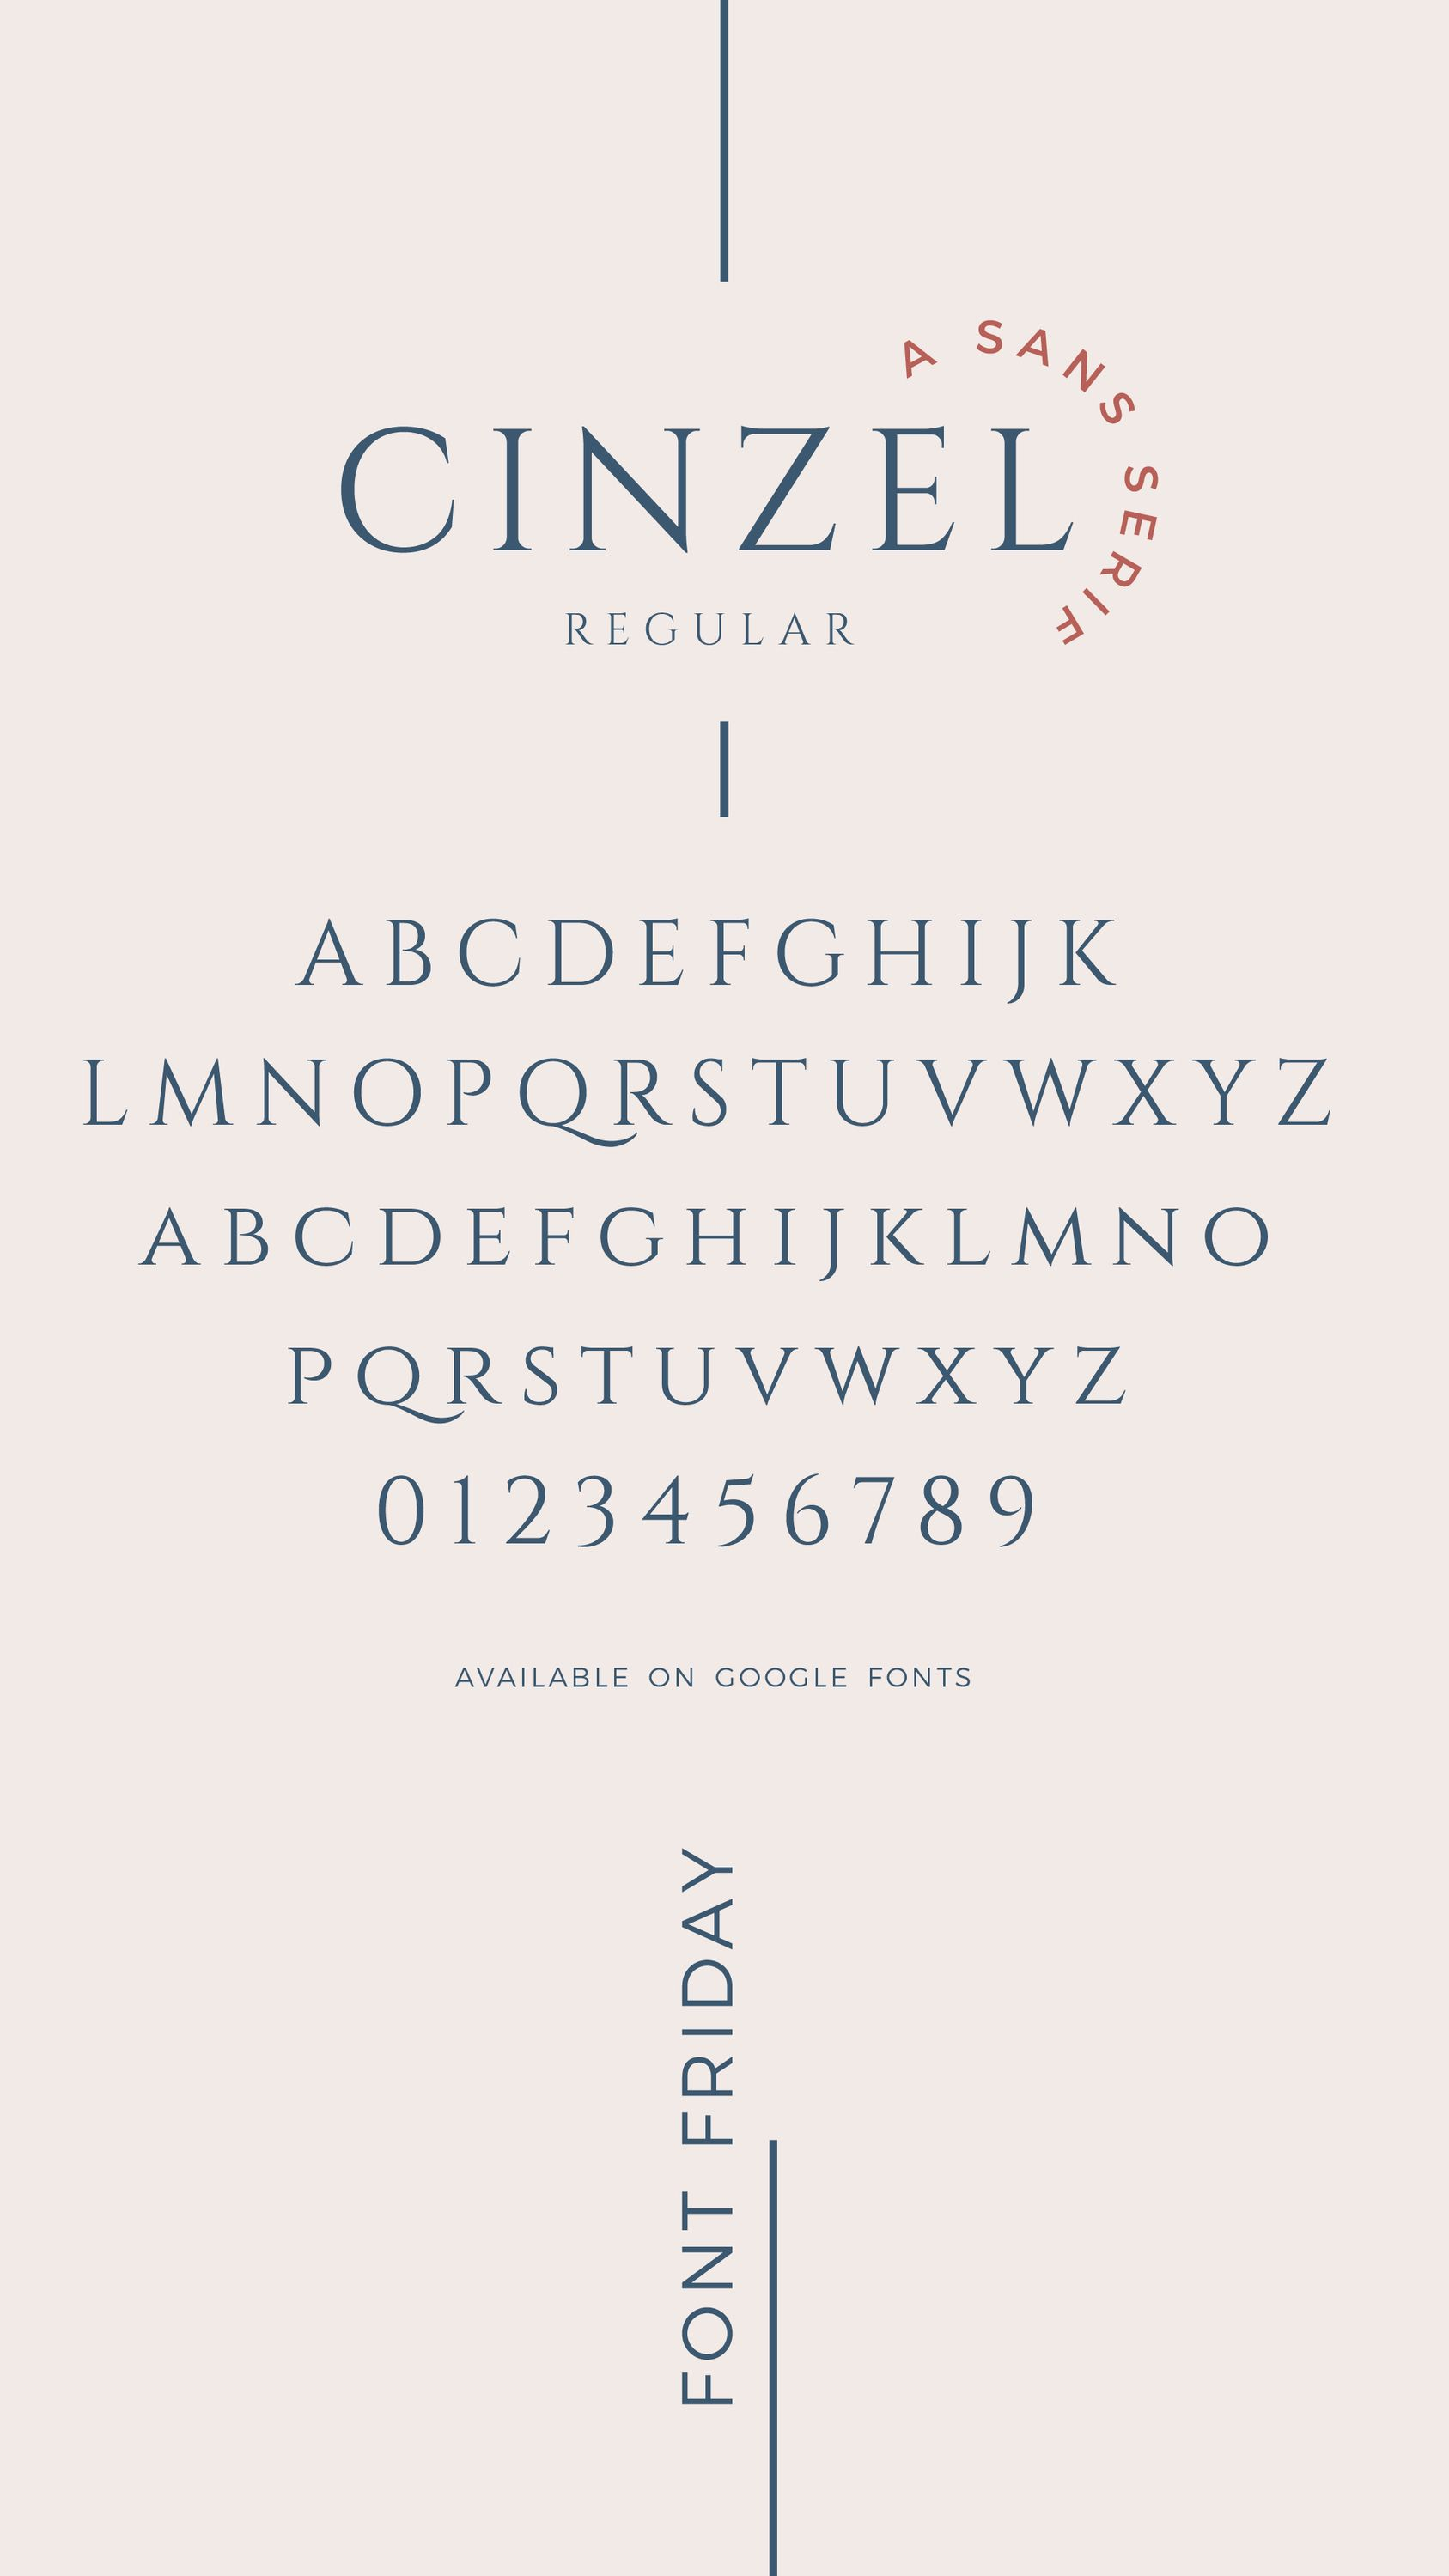 Happy Font Friday Friends We Love Cinzel For Its Nod Back To